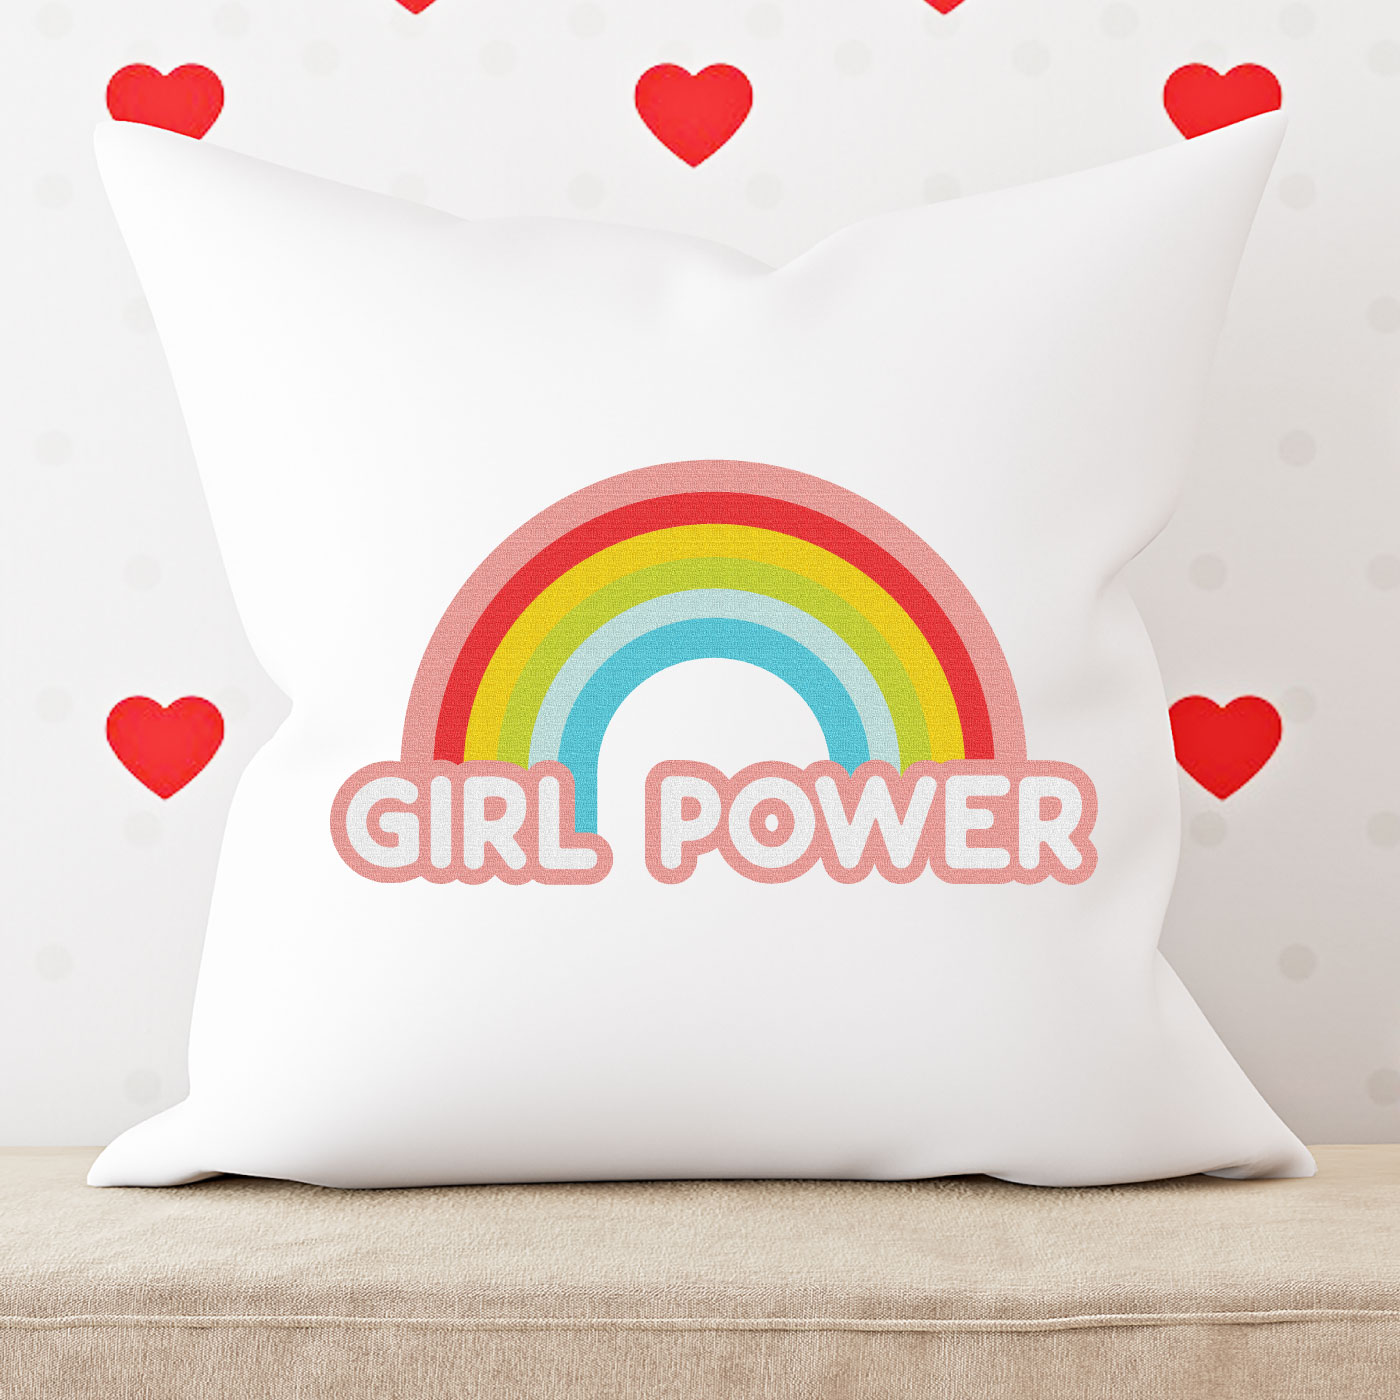 Girl Power image on pillow with heart wallpaper